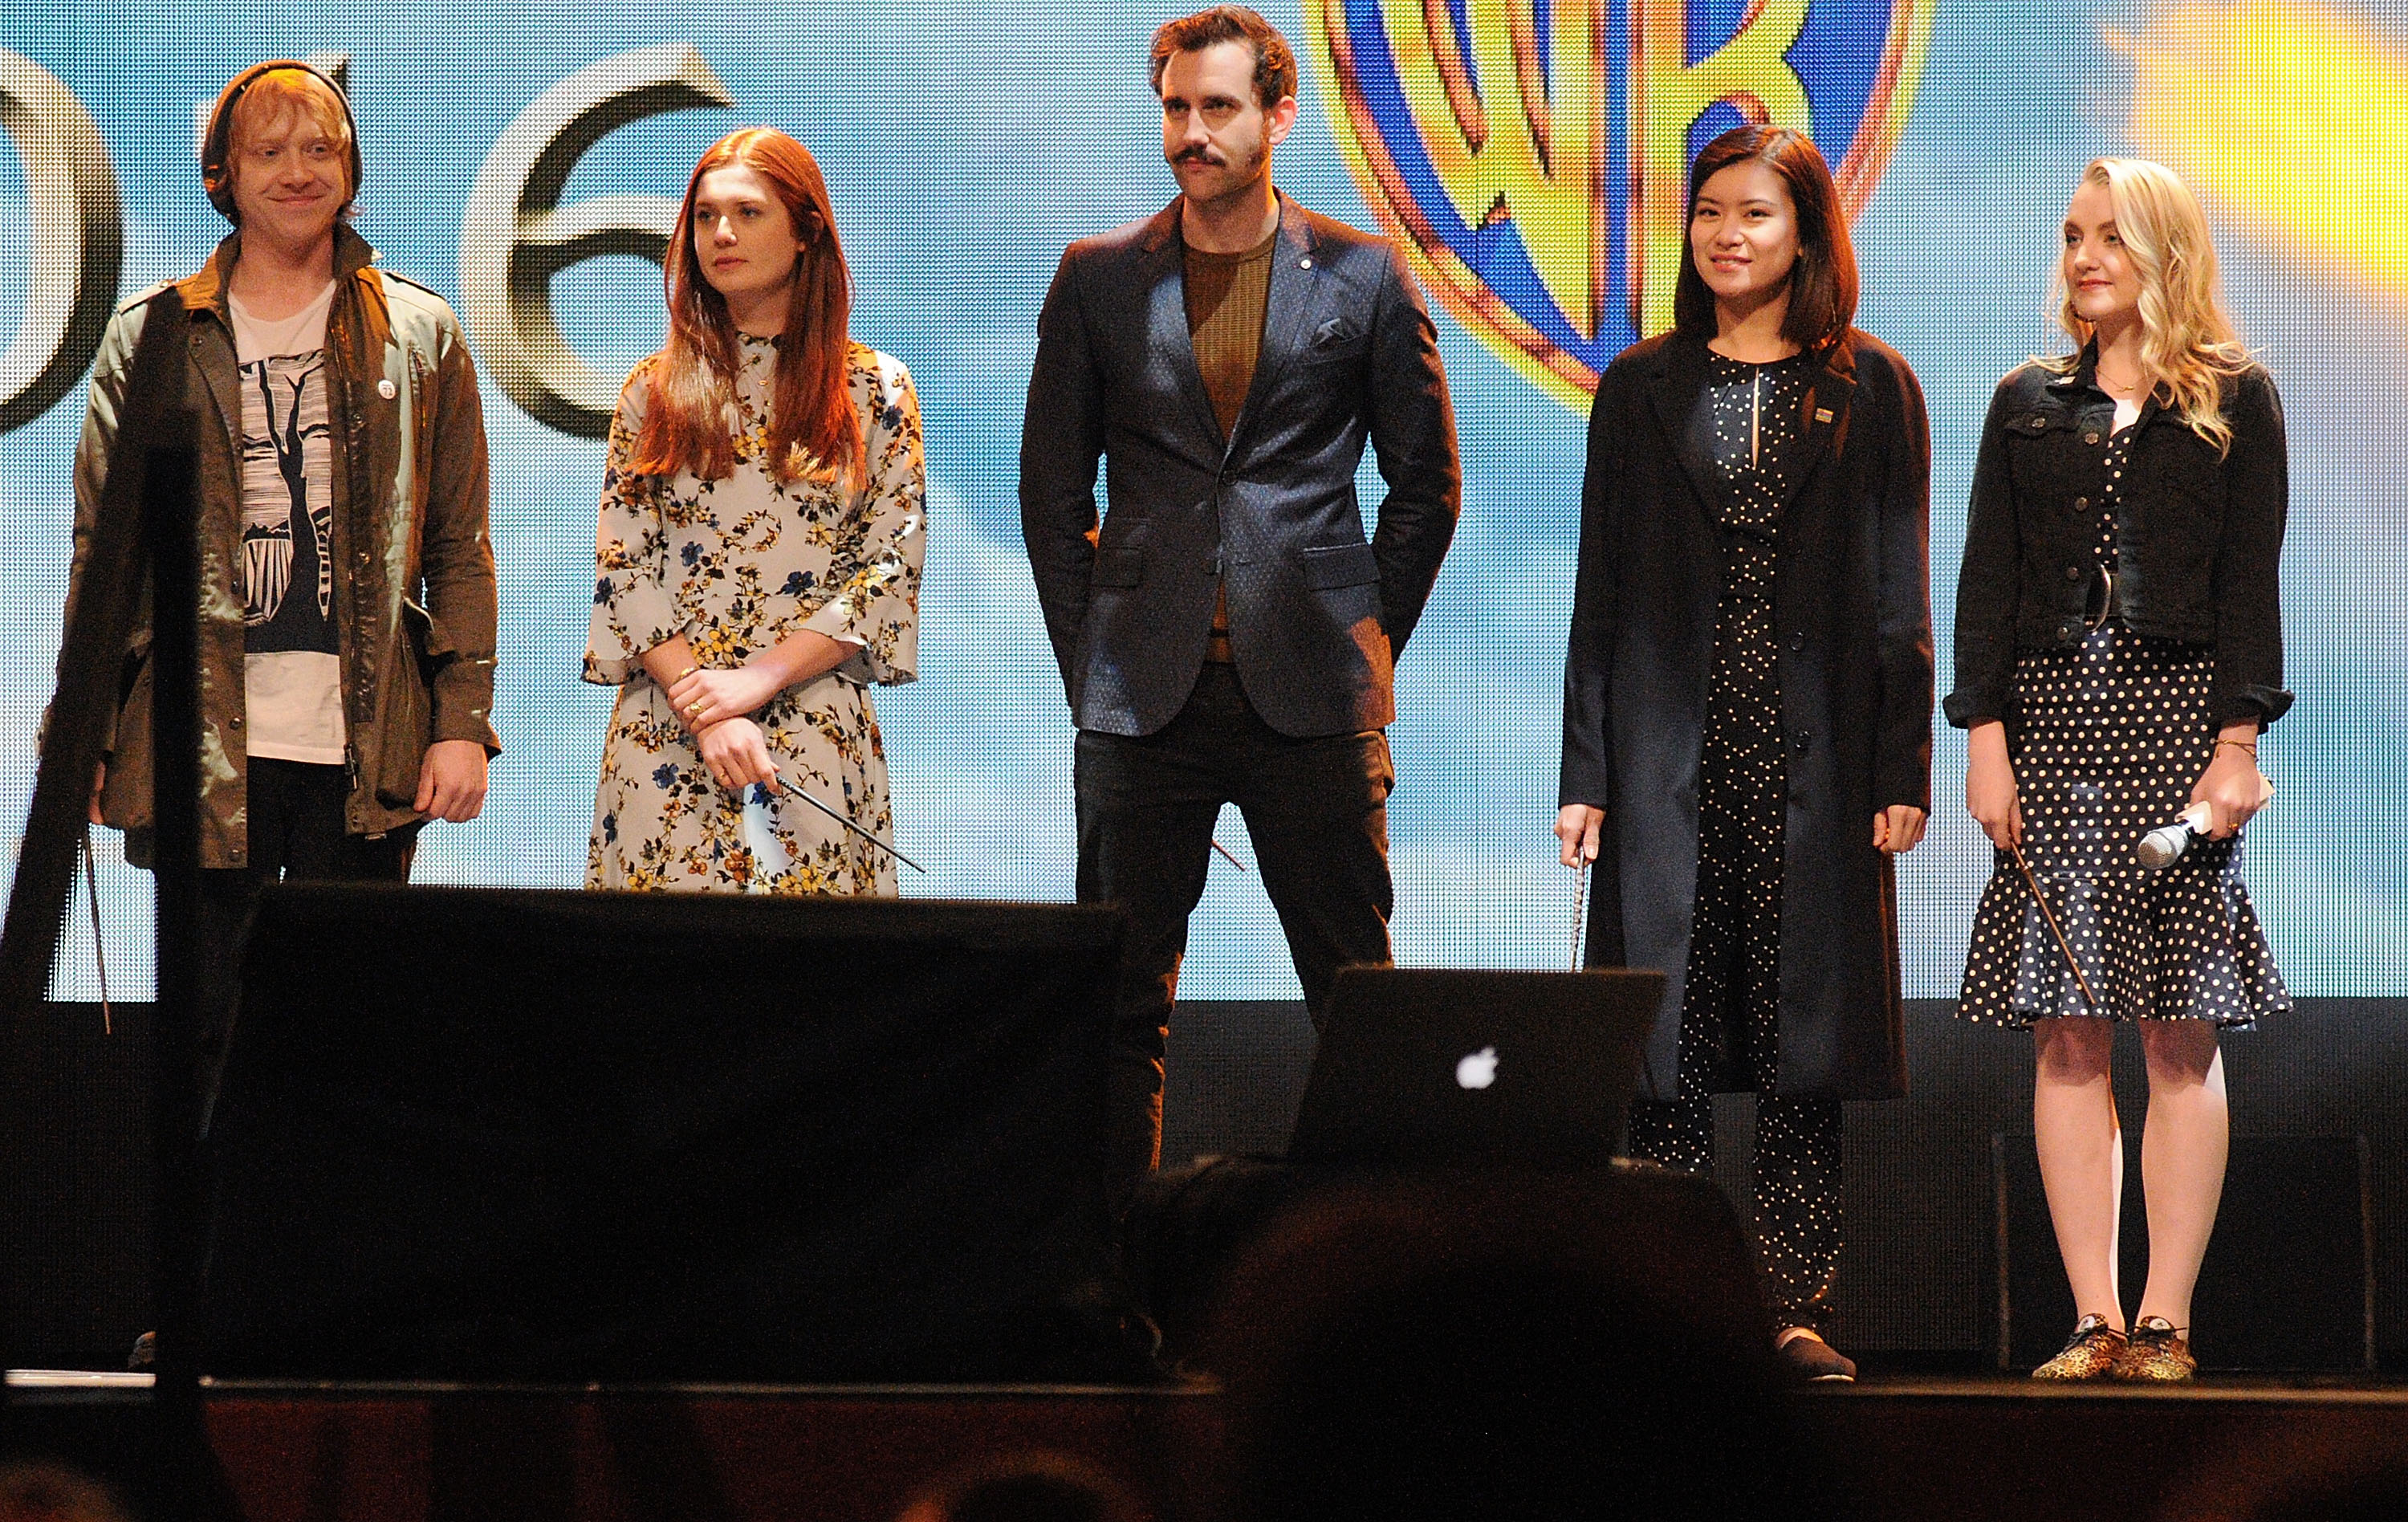 Harry Potter' cast members (L-R) Rupert Grint, Bonnie Wright, Matthew Lewis, Katie Leung and Evanna Lynch attend the 3rd Annual Celebration Of Harry Potter at Universal Orlando on Jan.29, 2016 in Orlando, Florida.